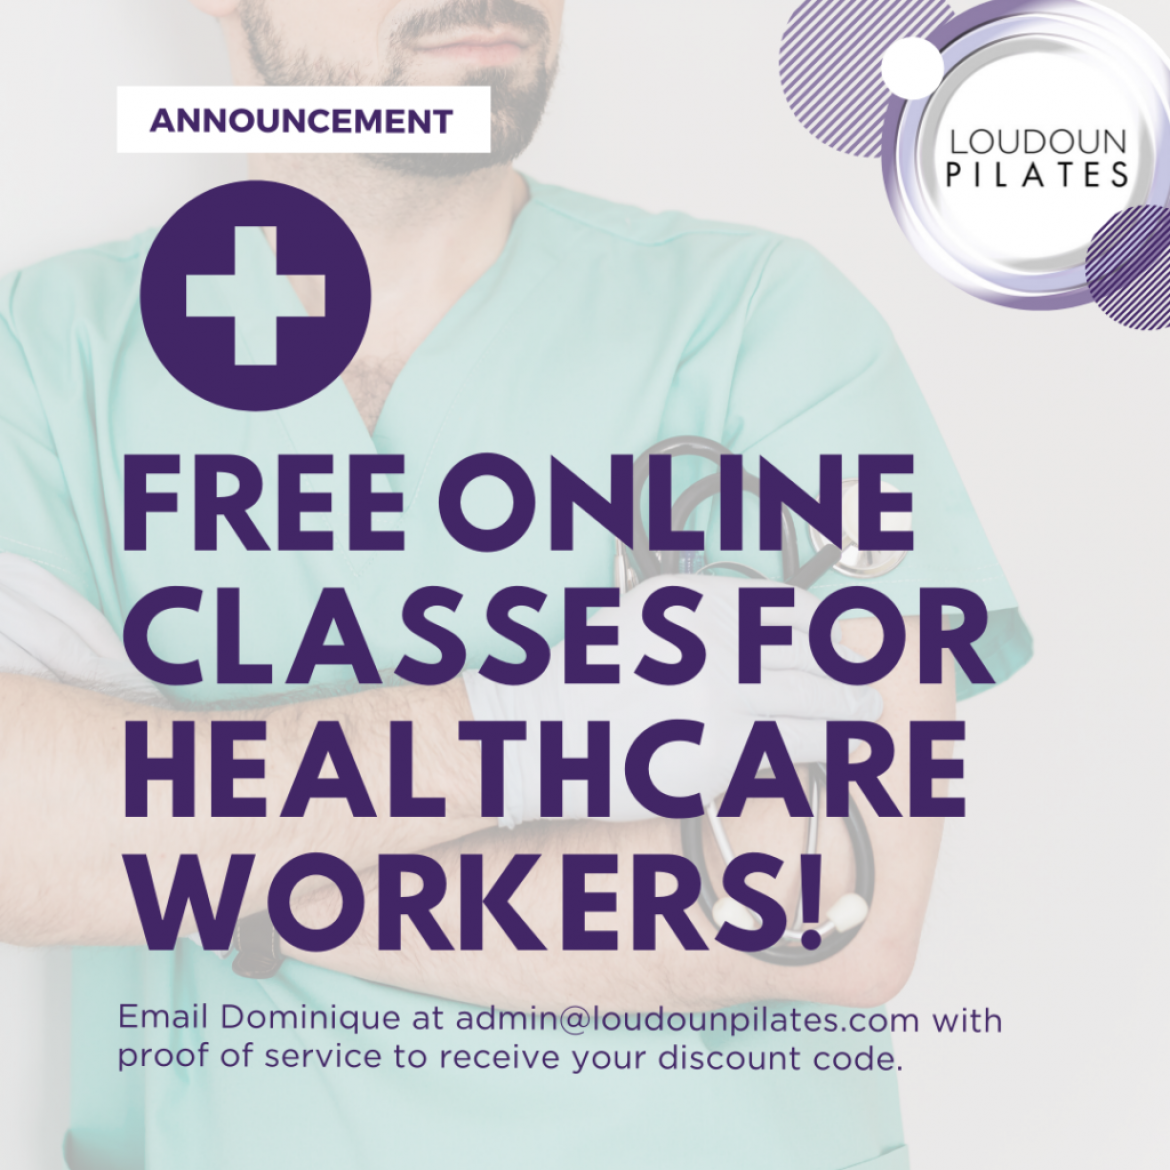 Free Online Classes for Healthcare Workers